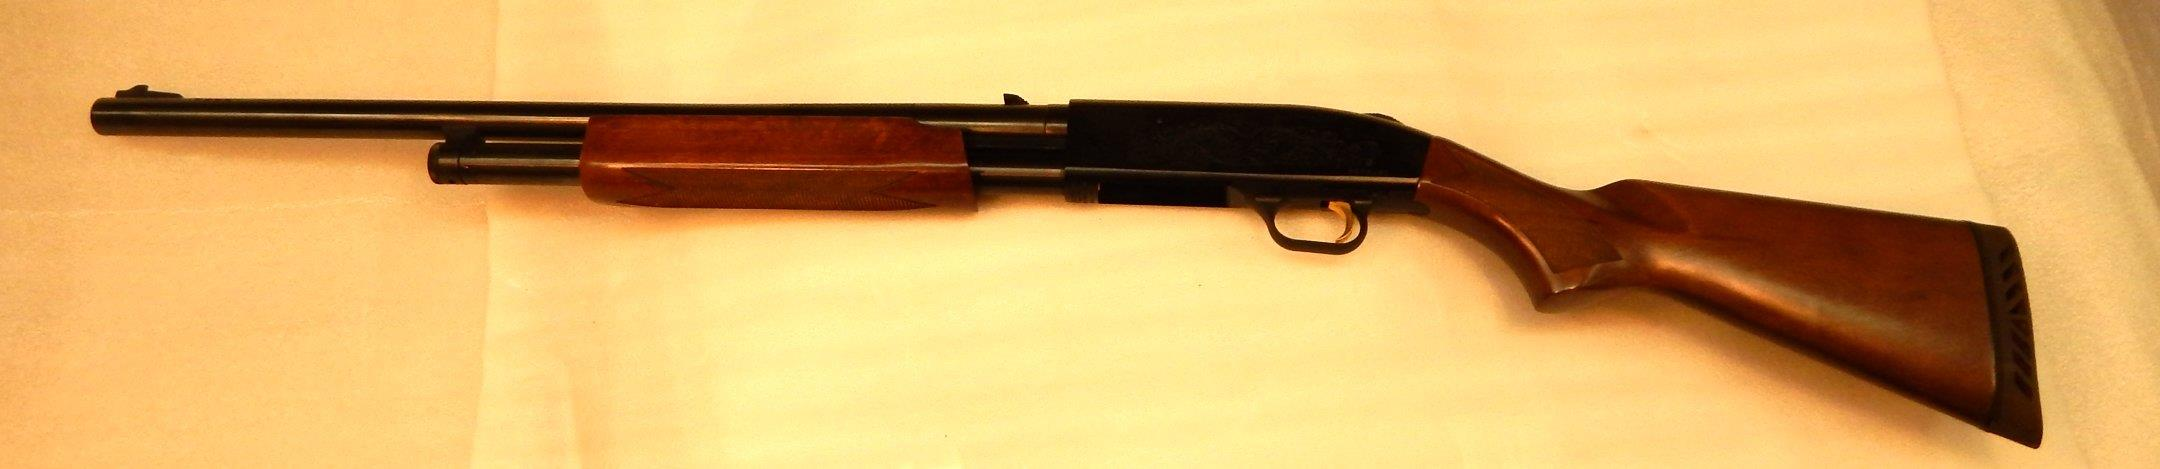 Mossberg 500  12g Fully Rifled -  Ready to Hunt!  Guns > Shotguns > Mossberg Shotguns > Pump > Sporting